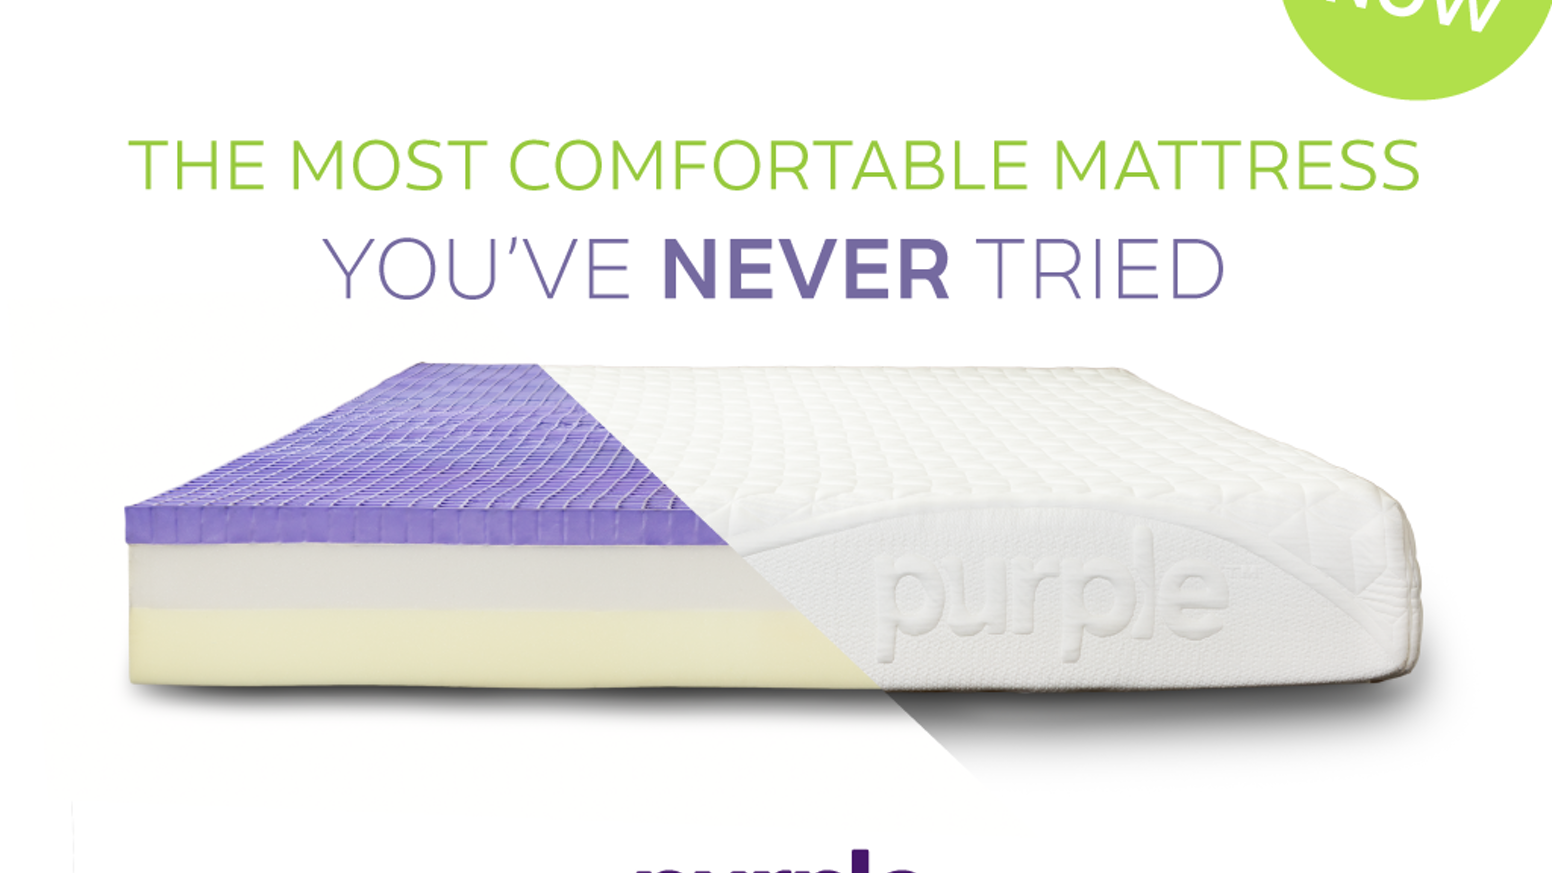 Thank you so much to all of our wonderful backers for making Purple™ a reality! Please visit our website to follow along our journey, catch up on our blog, and purchase product.